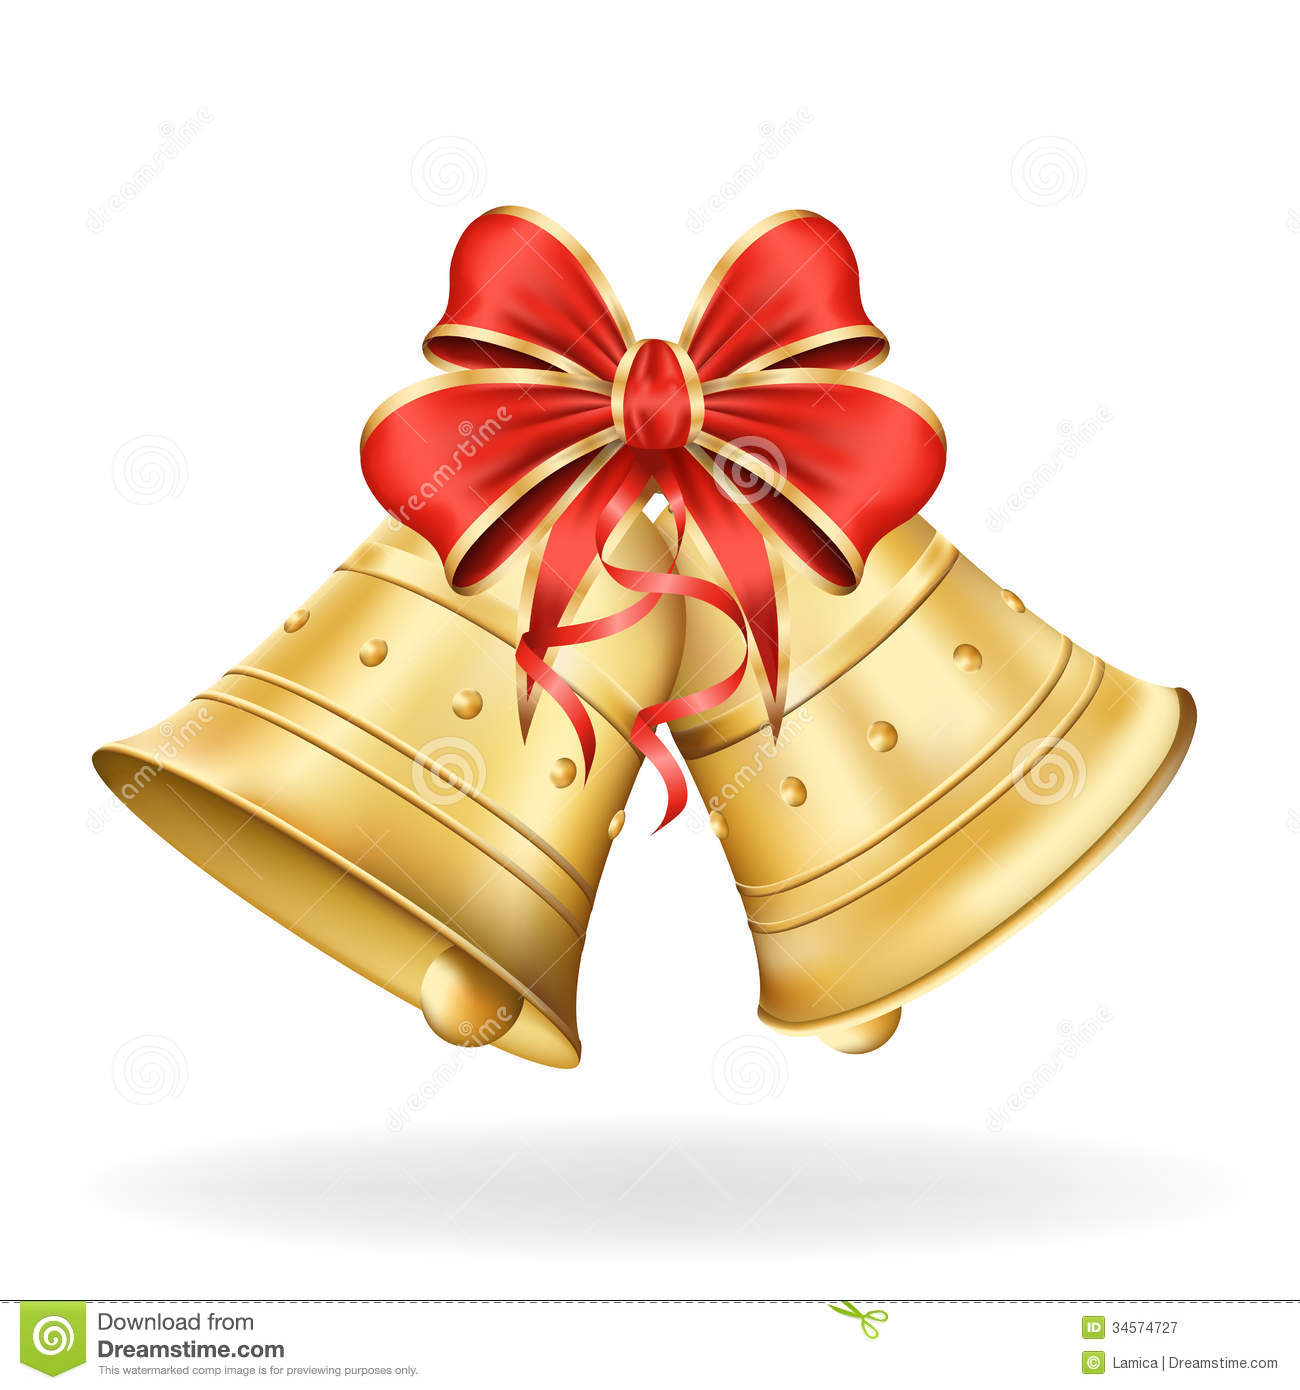 Christmas tree decorations silver and gold - Royalty Free Stock Photography Christmas Bells With Red Bow On White